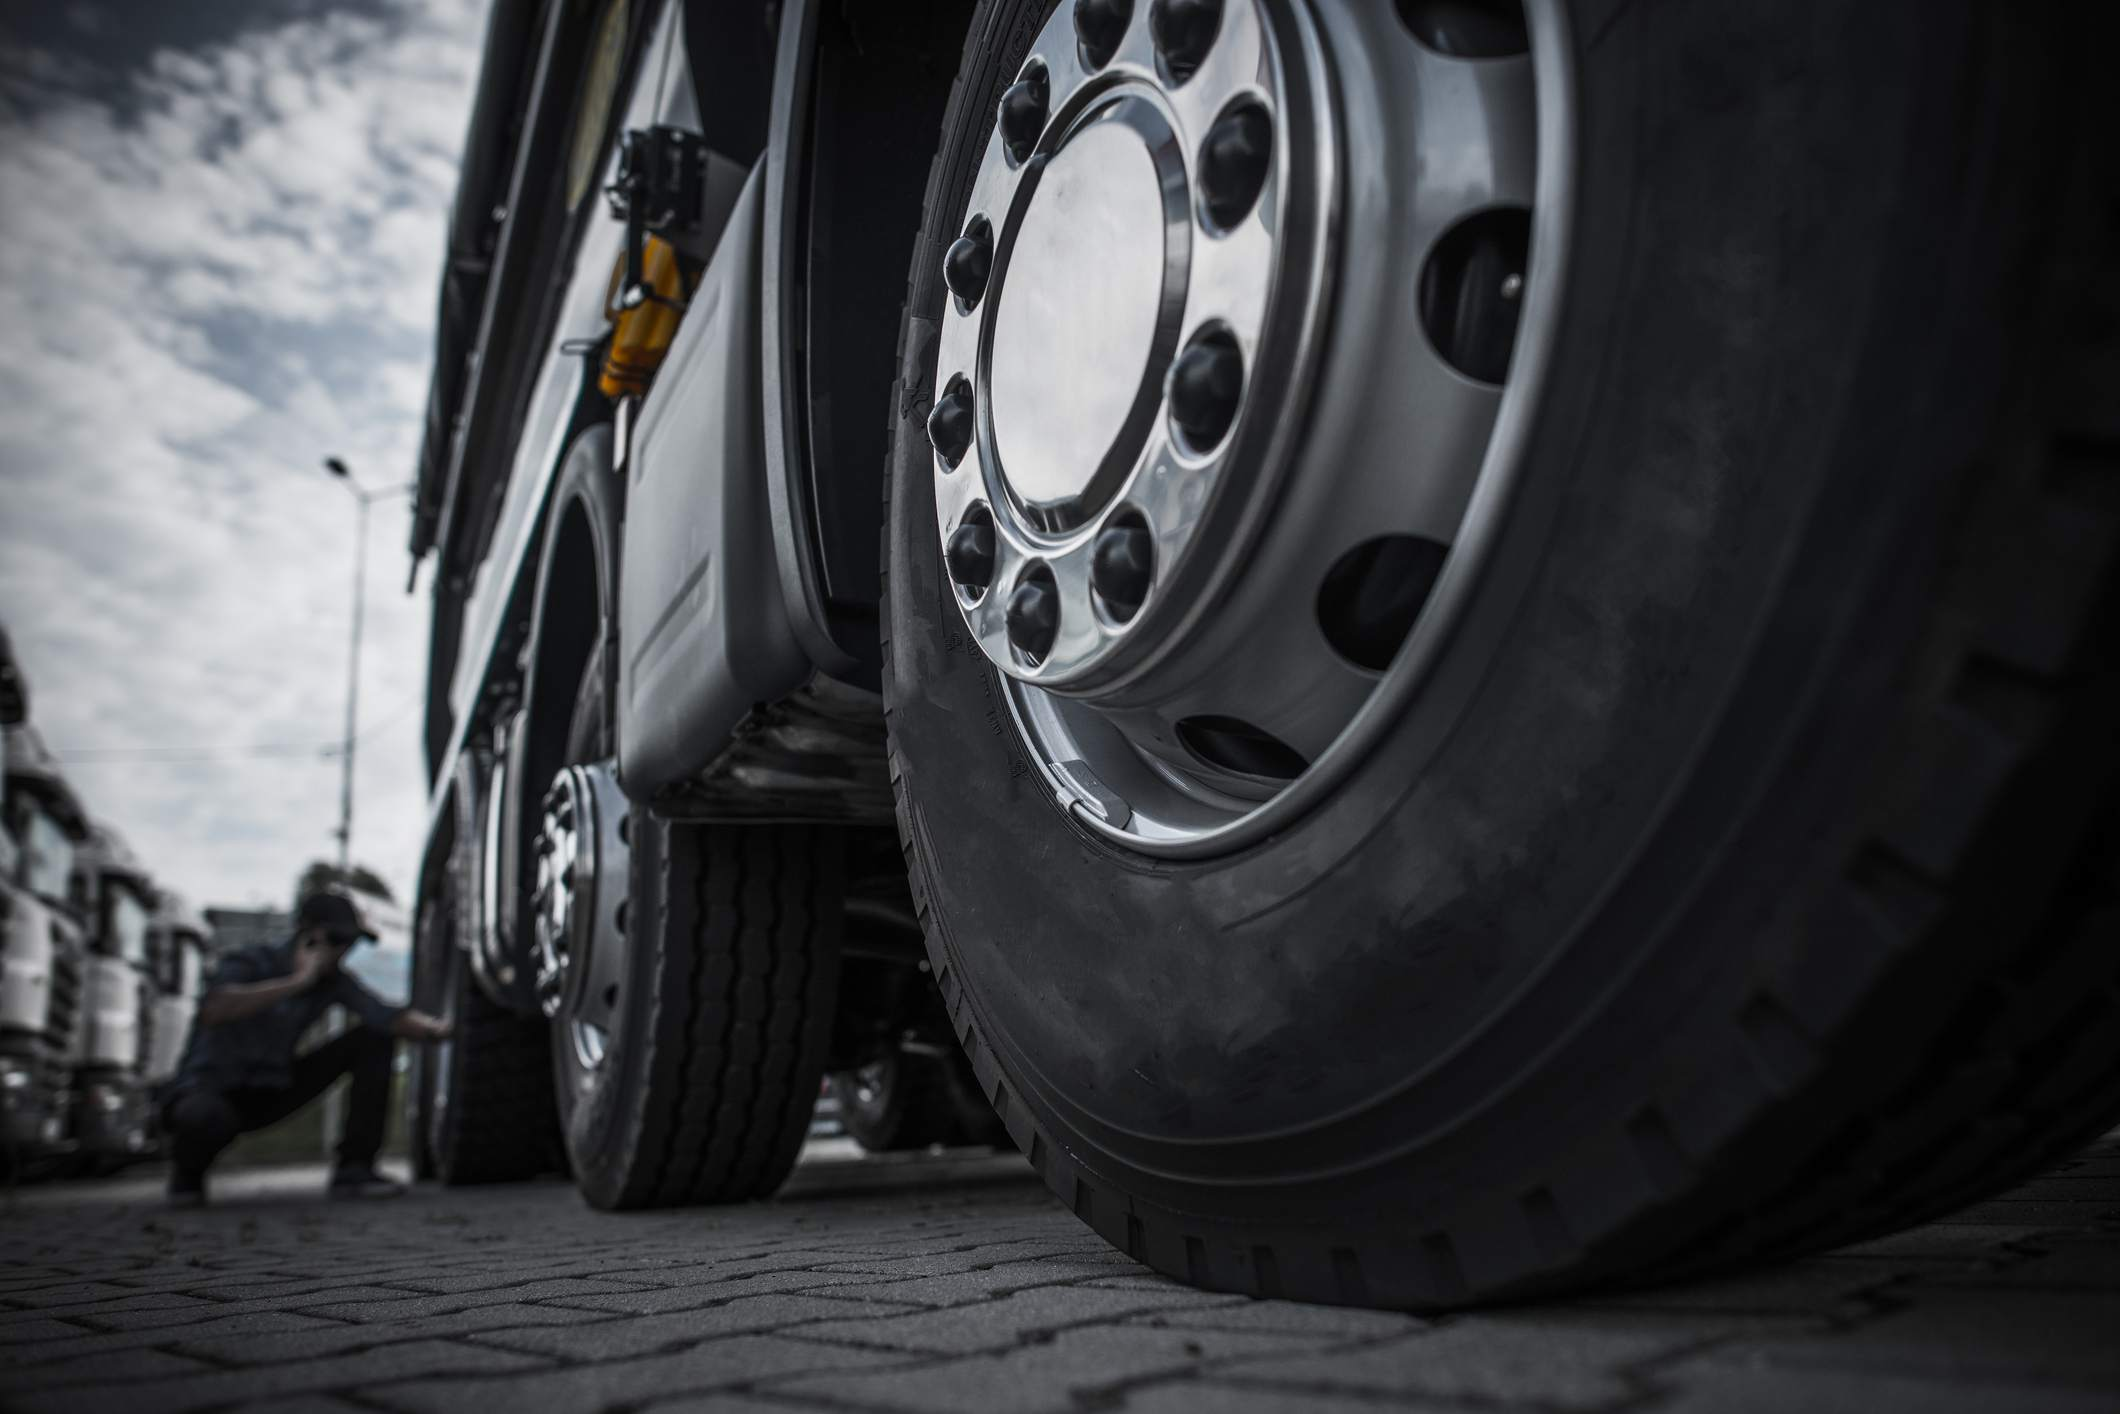 close-up of tires on commercial vehicle being inspected